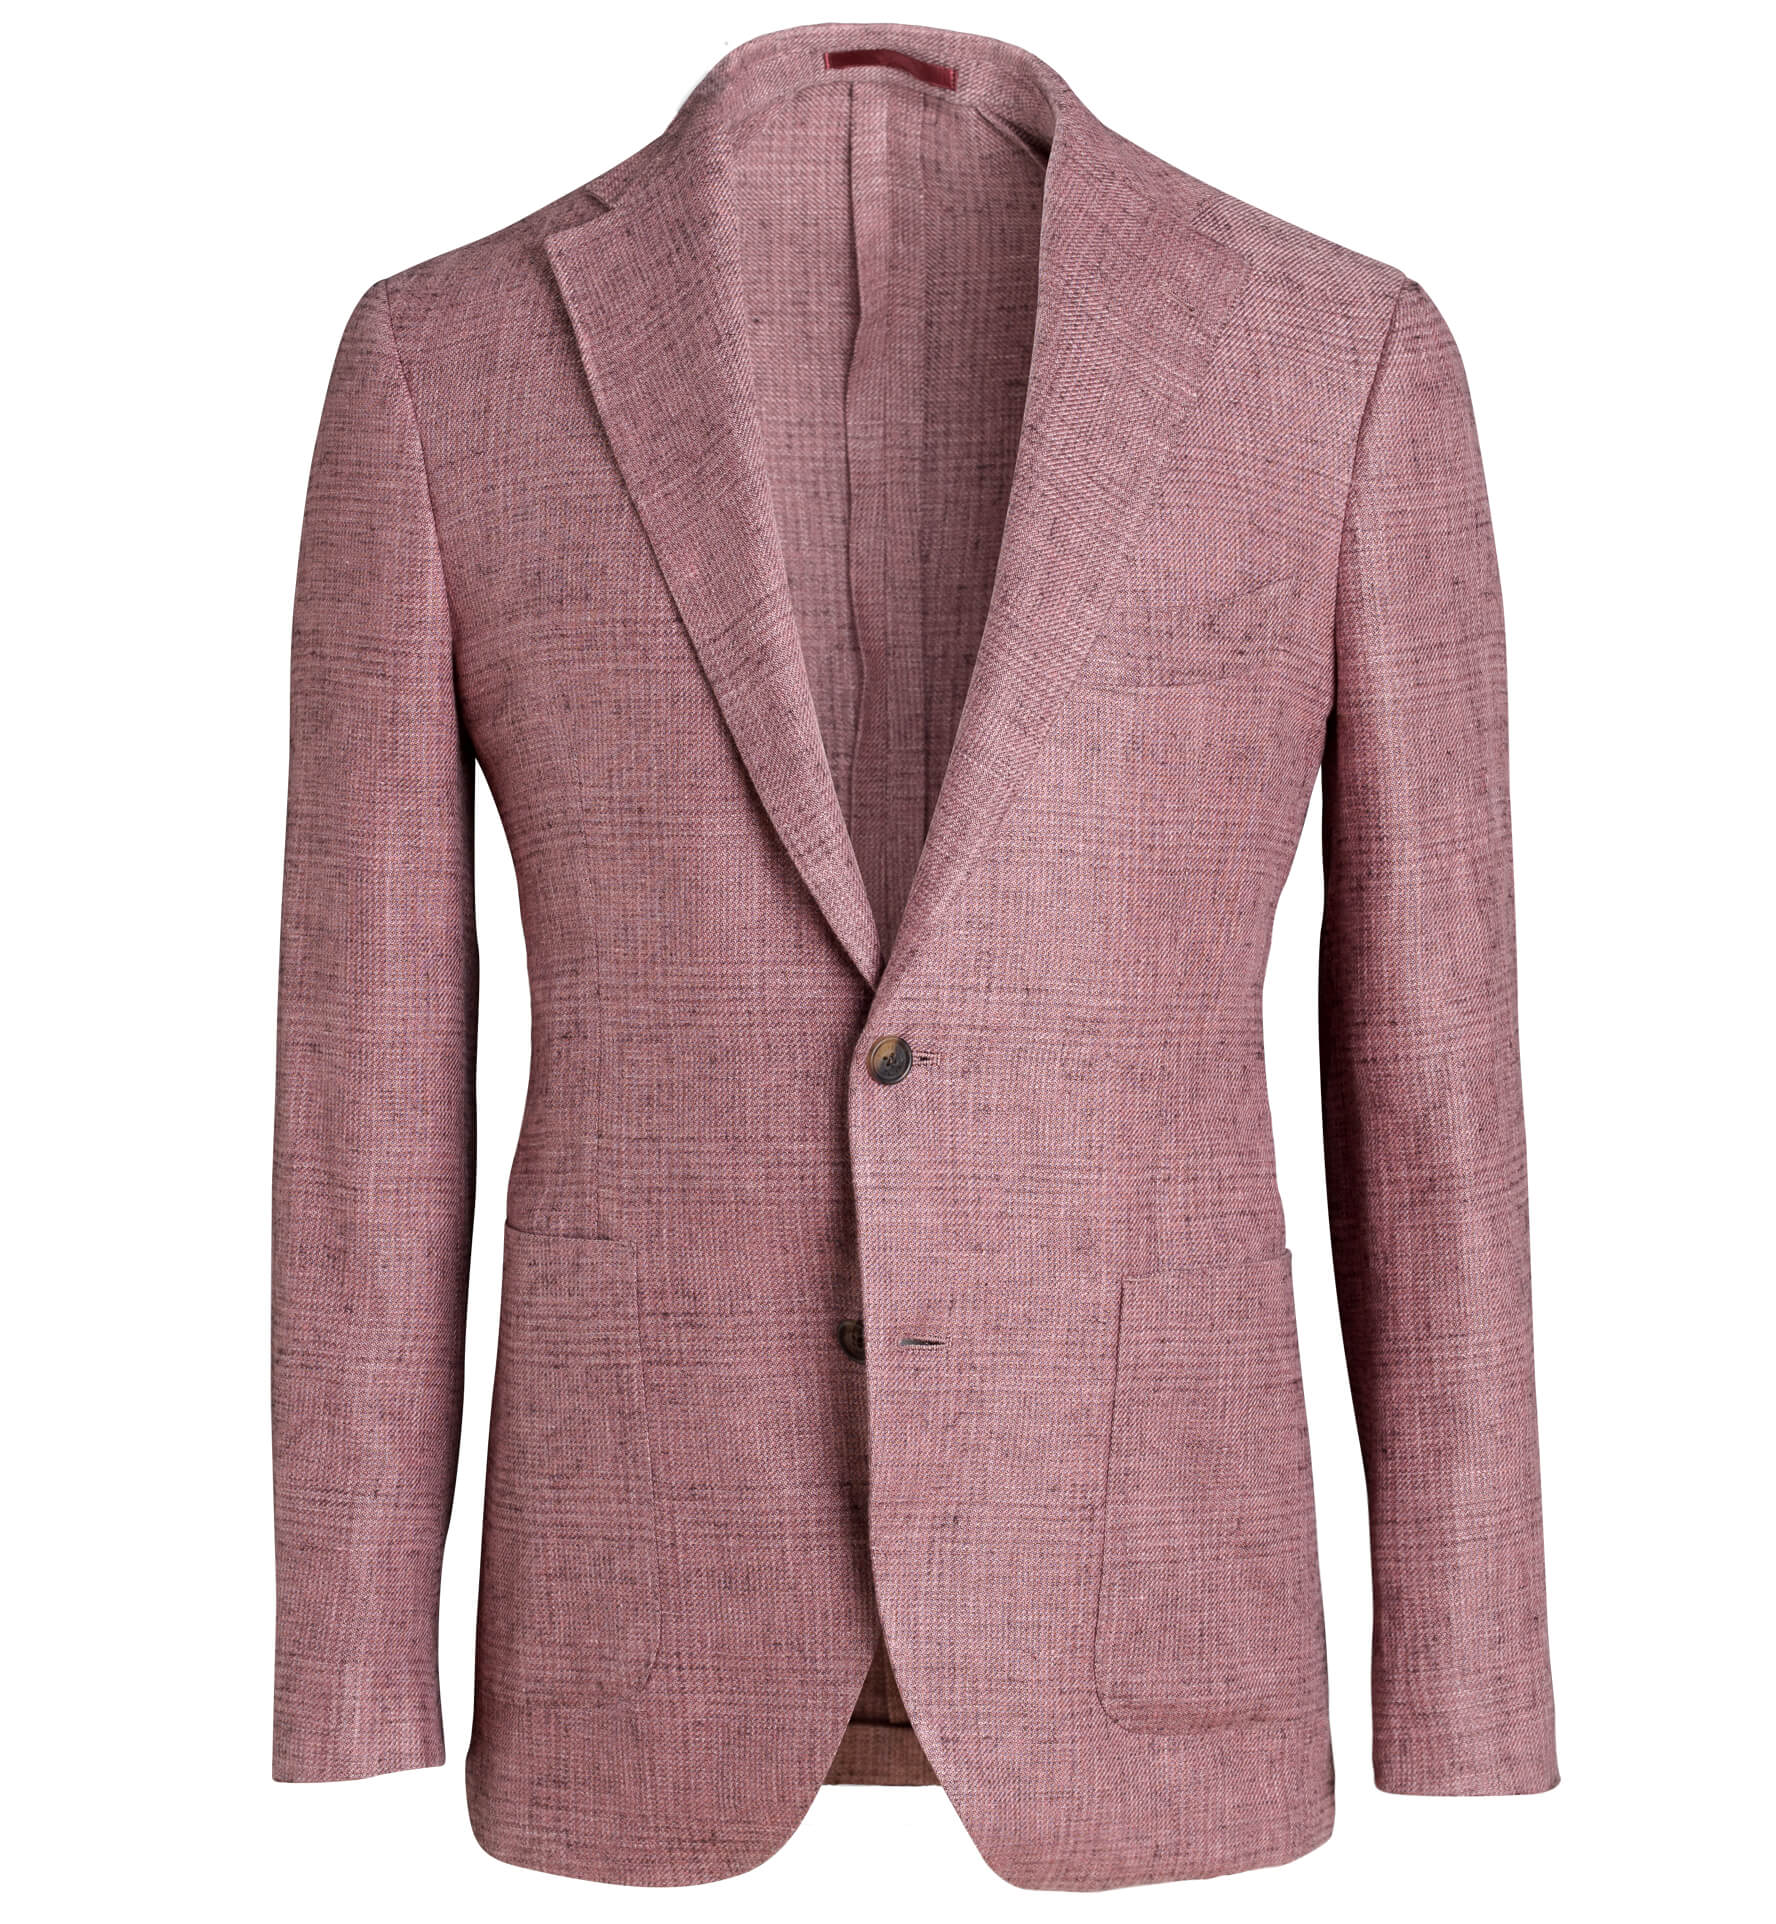 Zoom Image of Bedford Faded Red Glen Plaid Linen and Wool Jacket